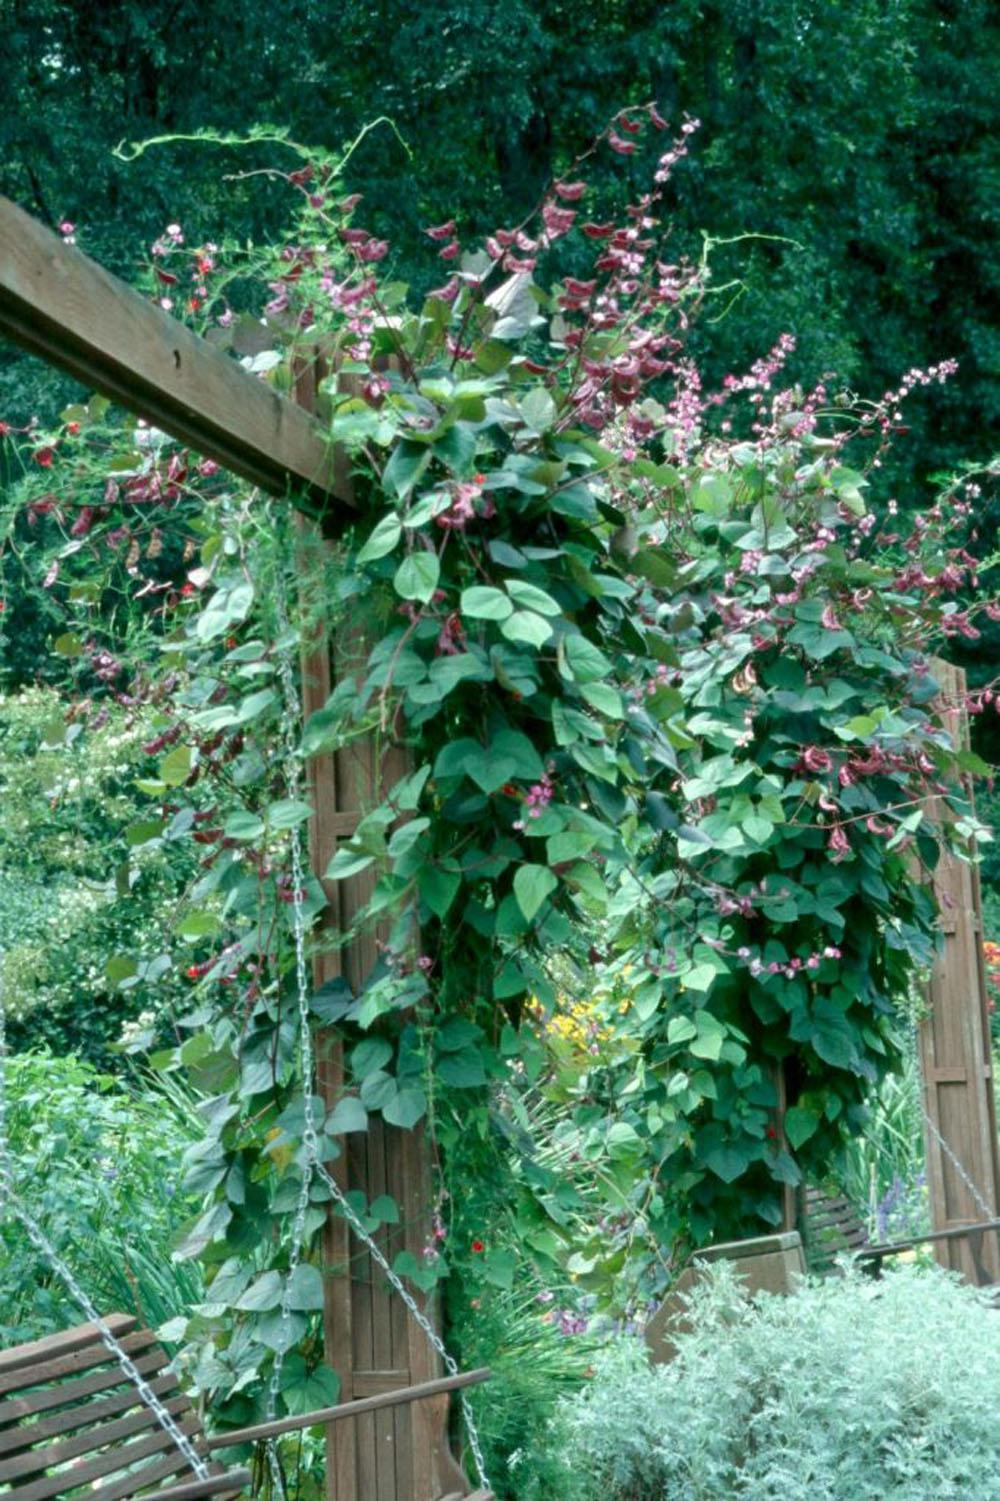 The hyacinth bean is an environmentally friendly vine to grow with low insect and disease pressures. Plant the seed adjacent to a sturdy support structure for climbing such as a fence, trellis or pergola.